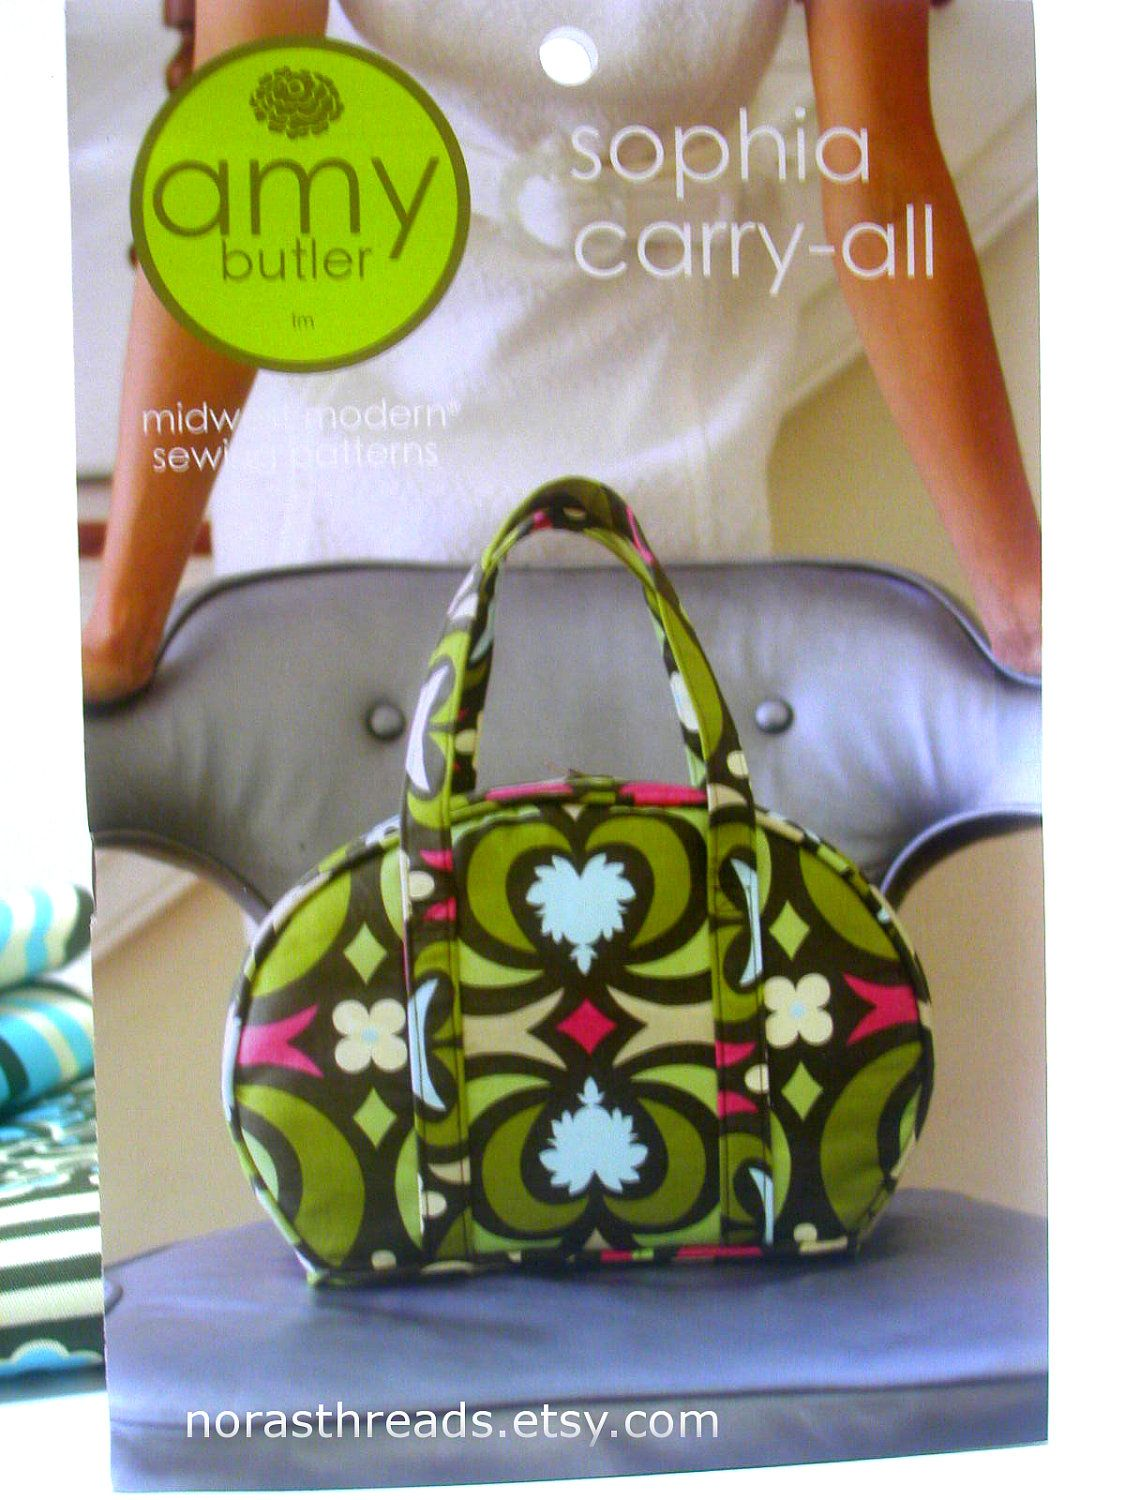 Amy Butler Bag Patterns Sophia Carryall Pattern By Norasthreads On Etsy